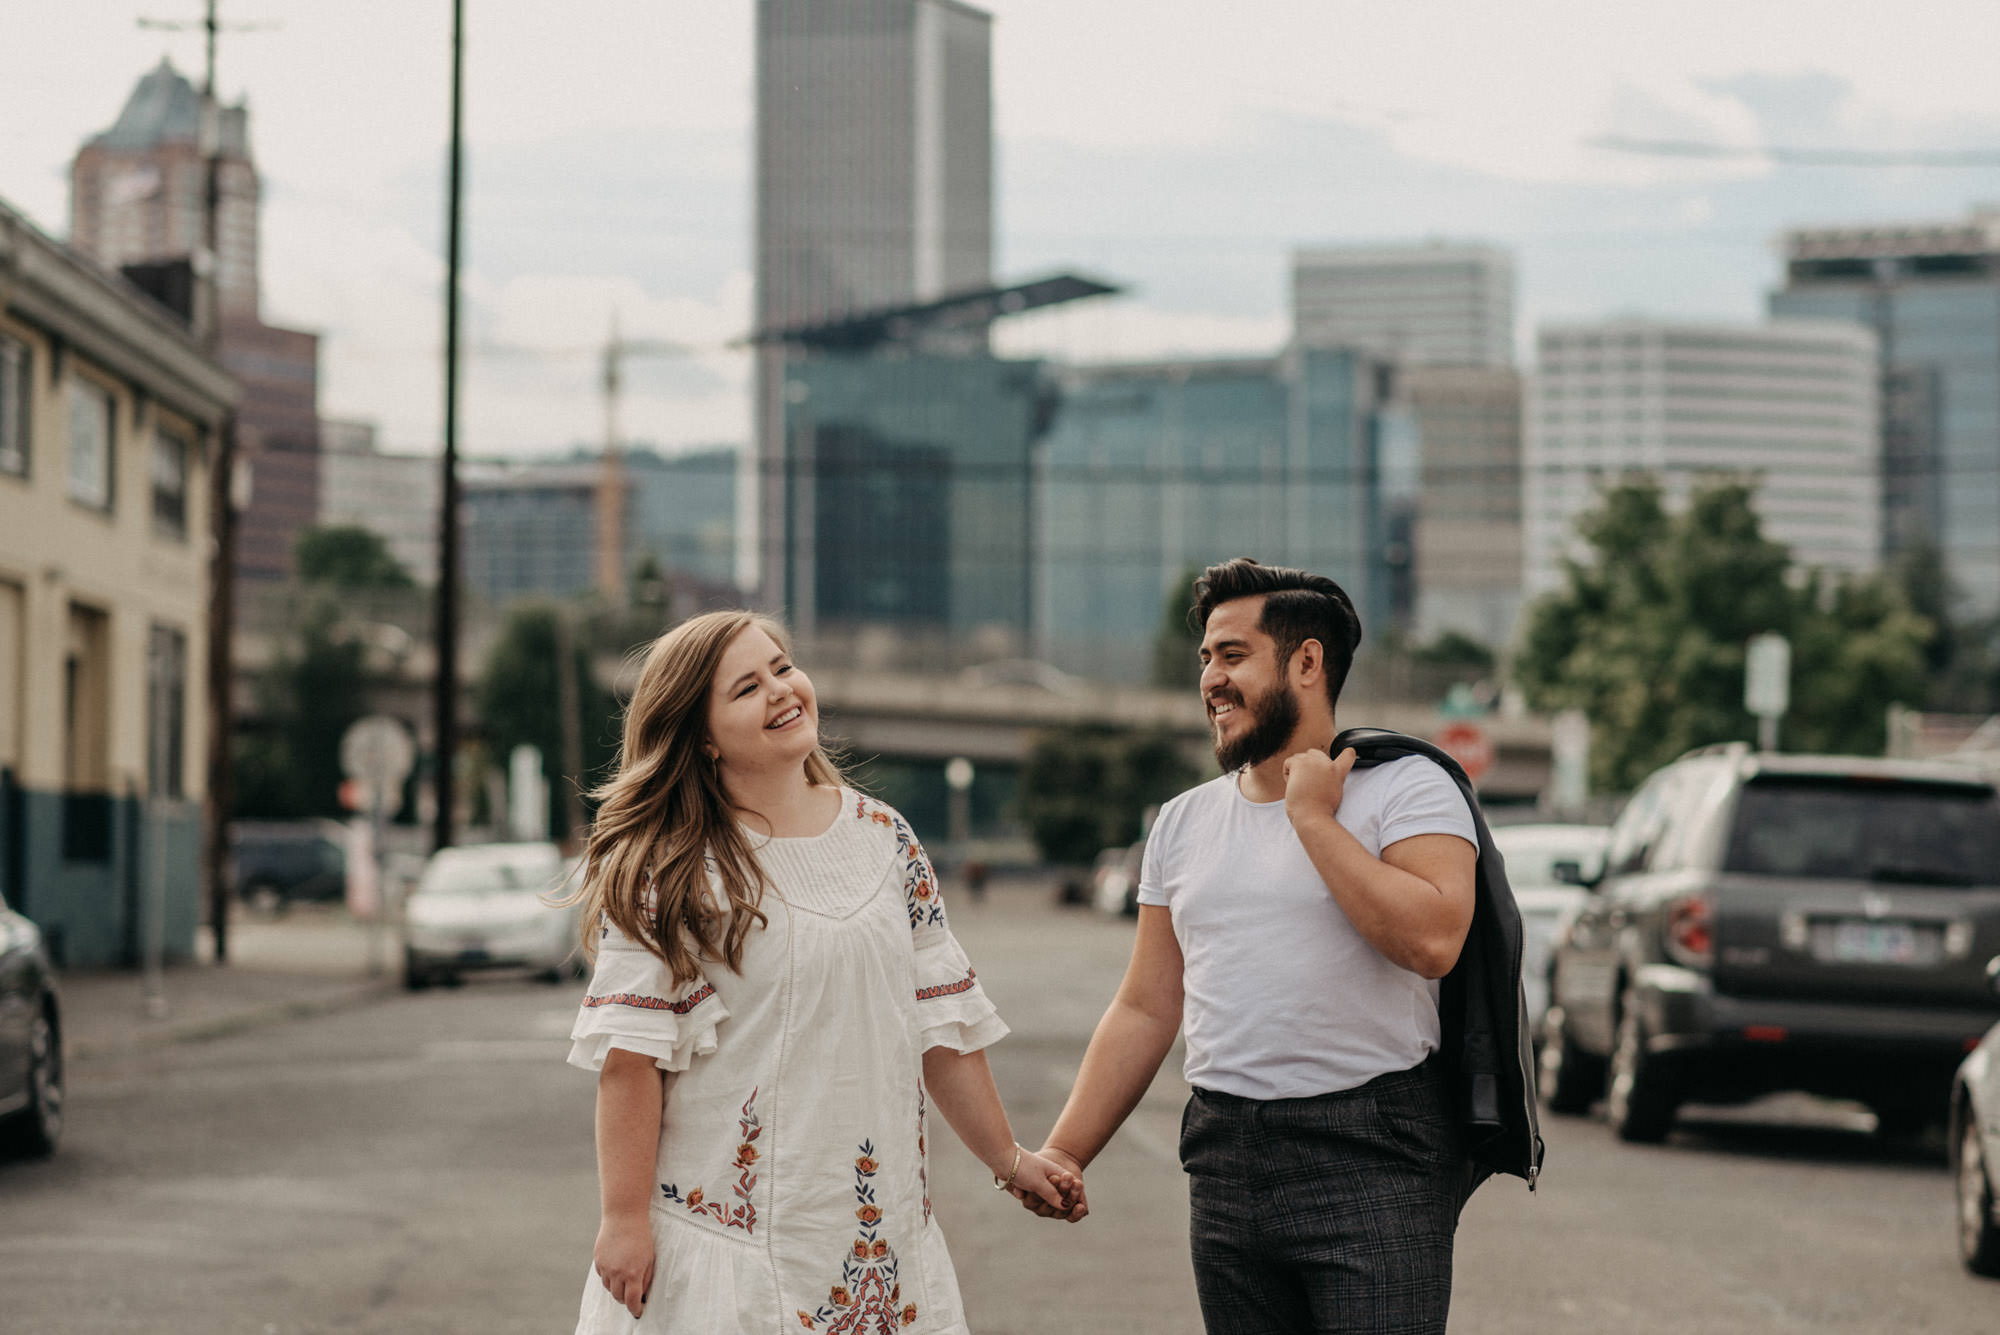 engagement-industrial-disctrict-cityscape-portland-downtown-4833.jpg